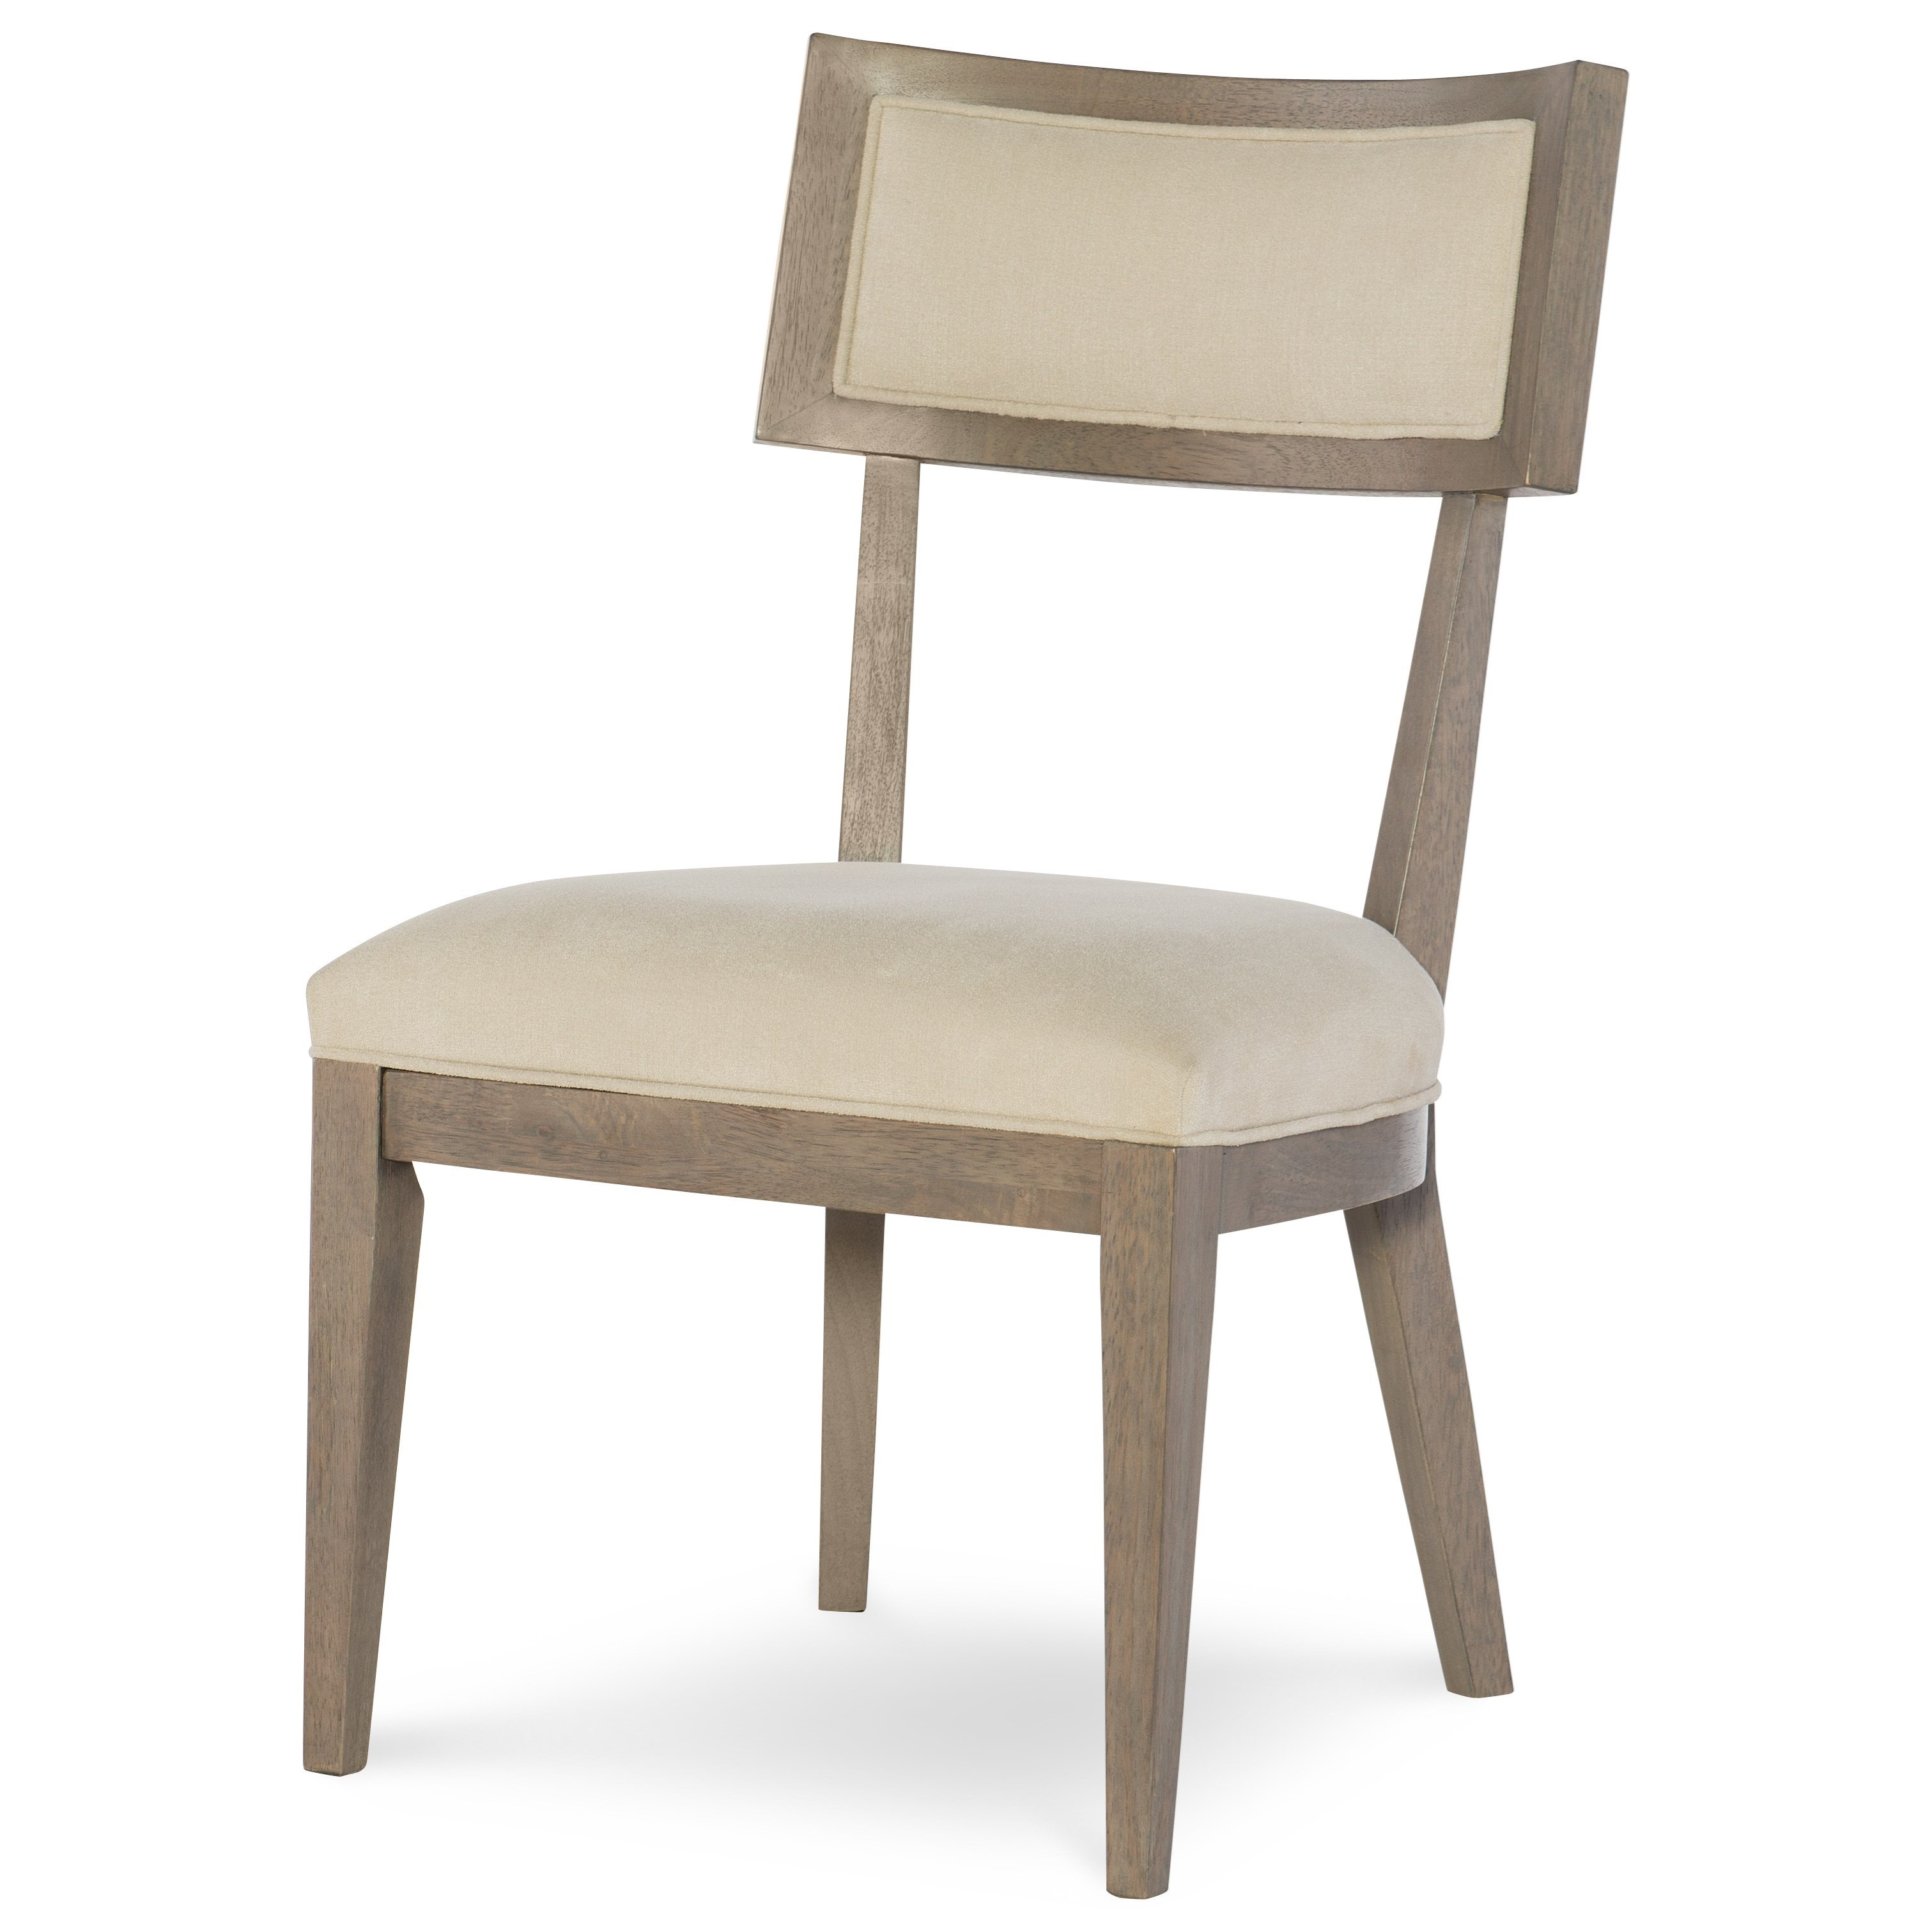 Rachael Ray Home High Line Klismo Side Chair - Item Number: 6000-340 KD